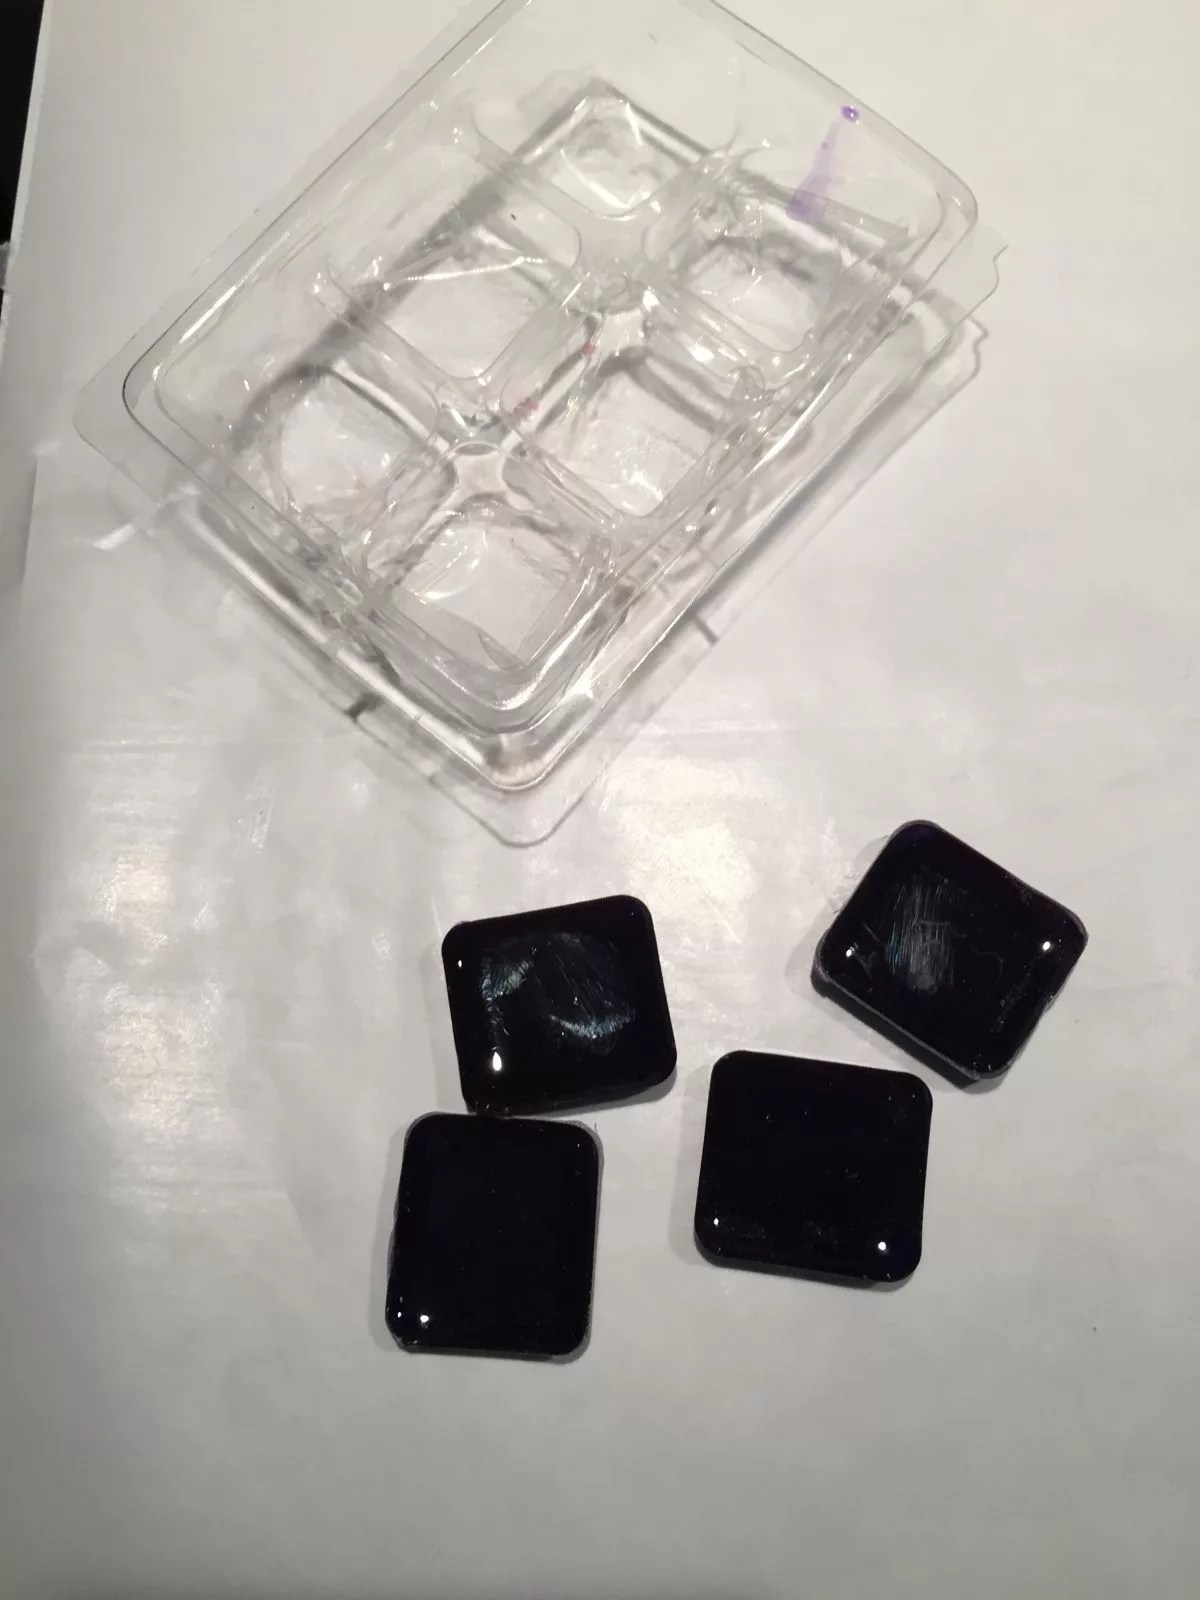 resin castings from a candle mold